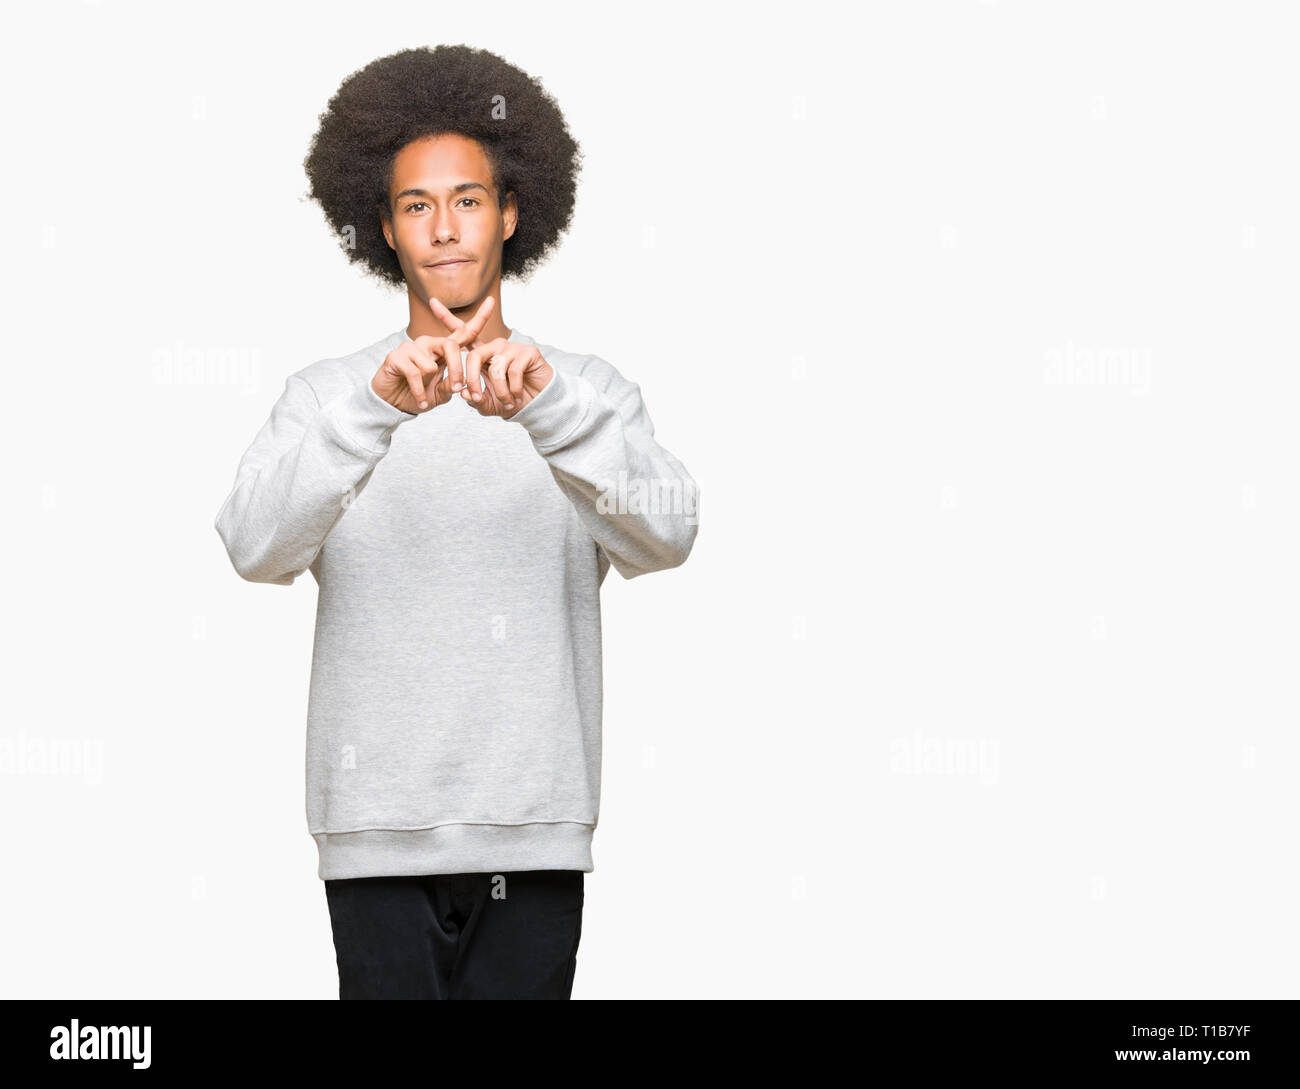 Young African American Man With Afro Hair Wearing Sporty